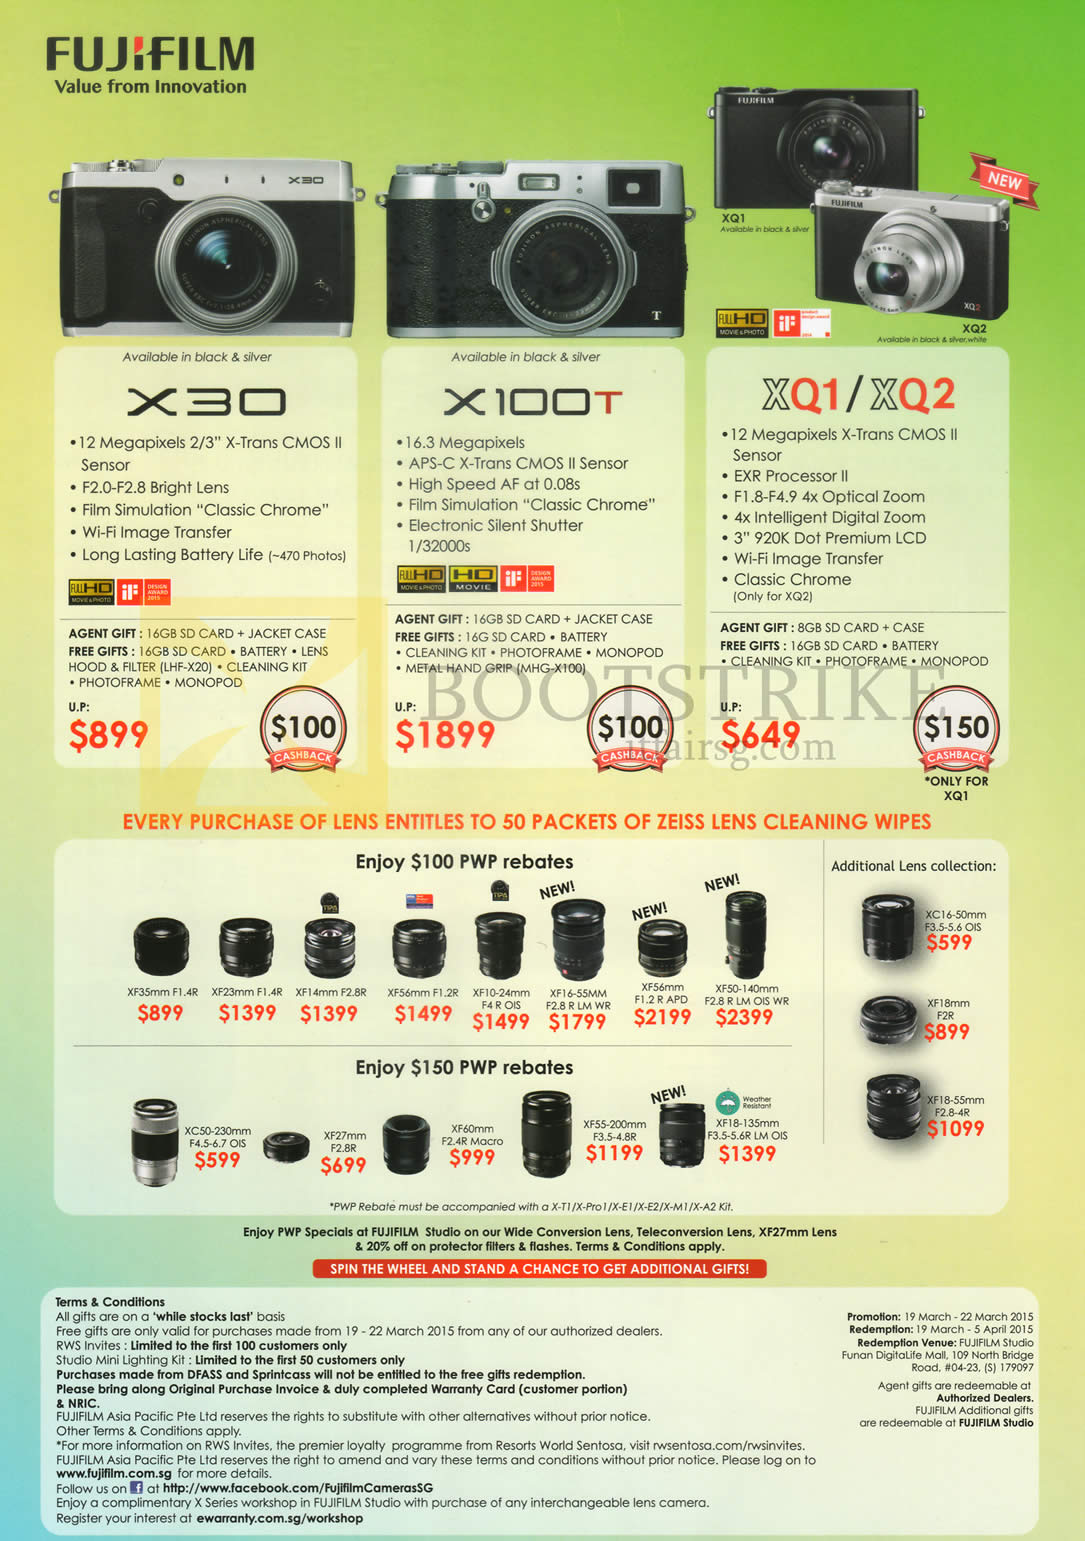 IT SHOW 2015 price list image brochure of Fujifilm (No Prices) Digital Cameras, Lenses X30, X100T, XQ1, XQ2